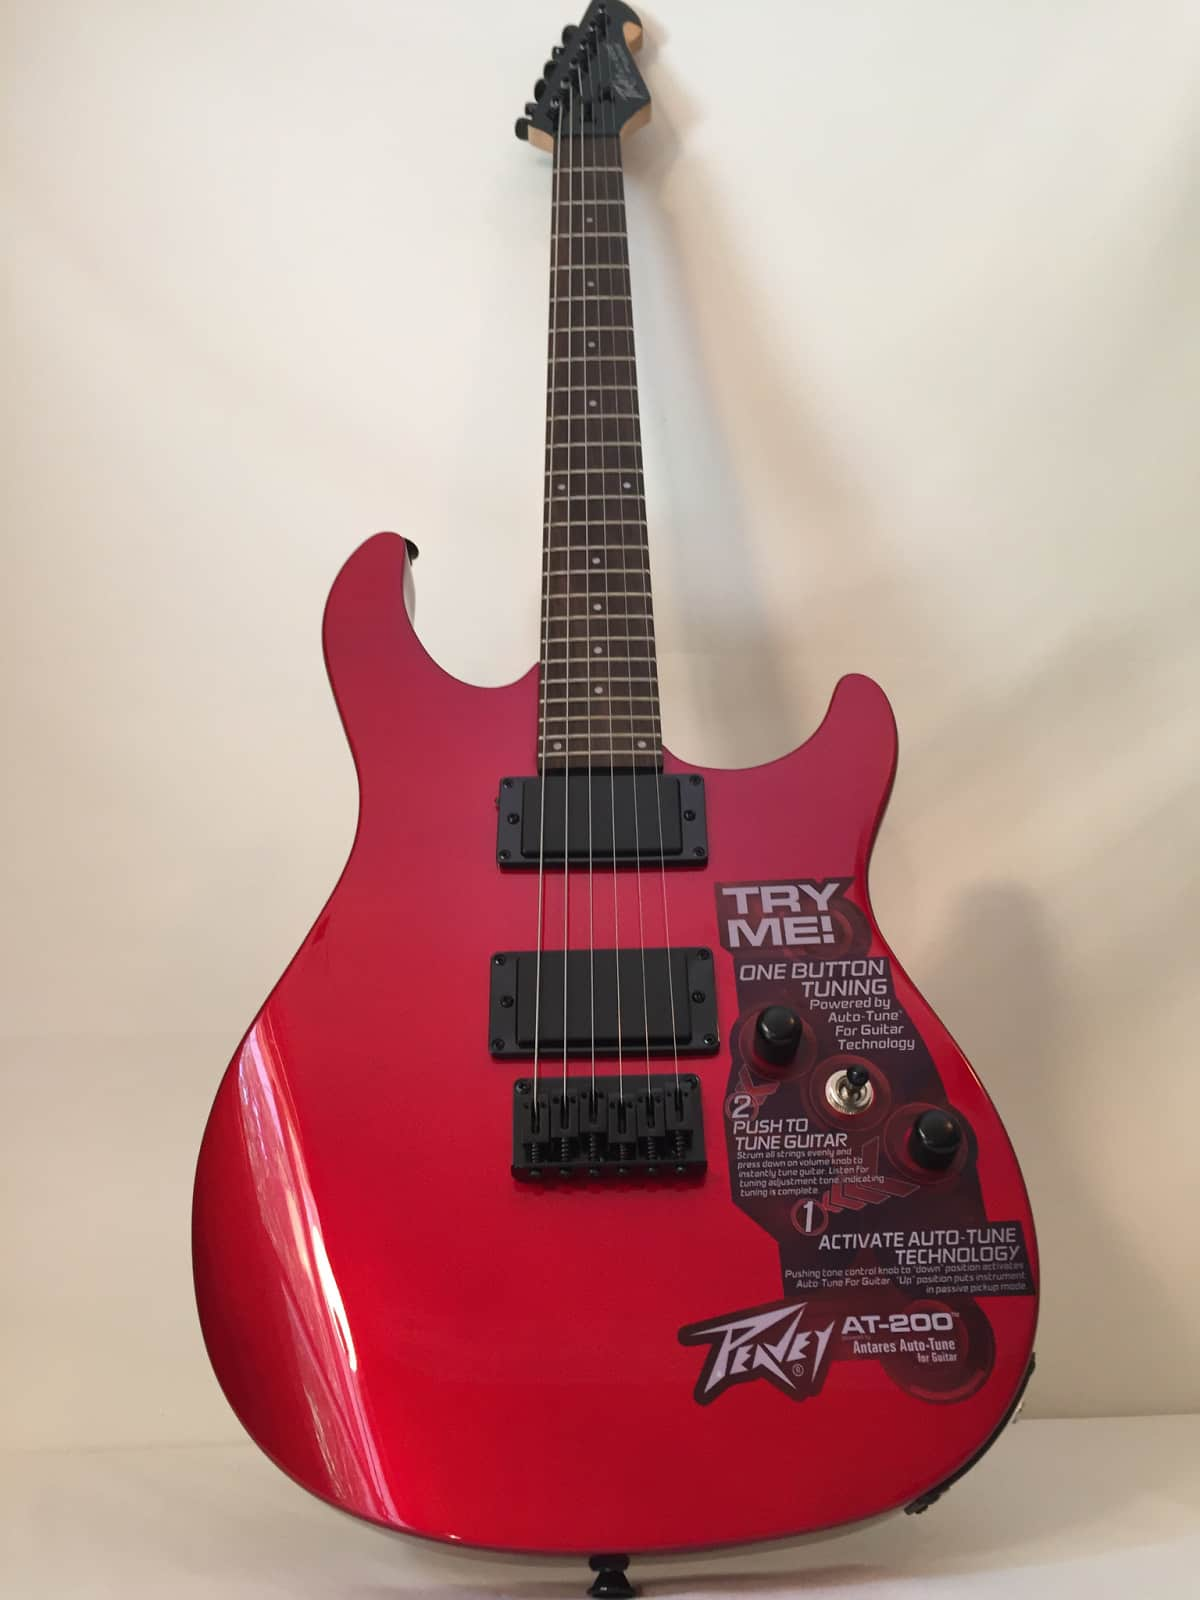 peavy at 200 automatic tuning electric guitar candy apple reverb. Black Bedroom Furniture Sets. Home Design Ideas